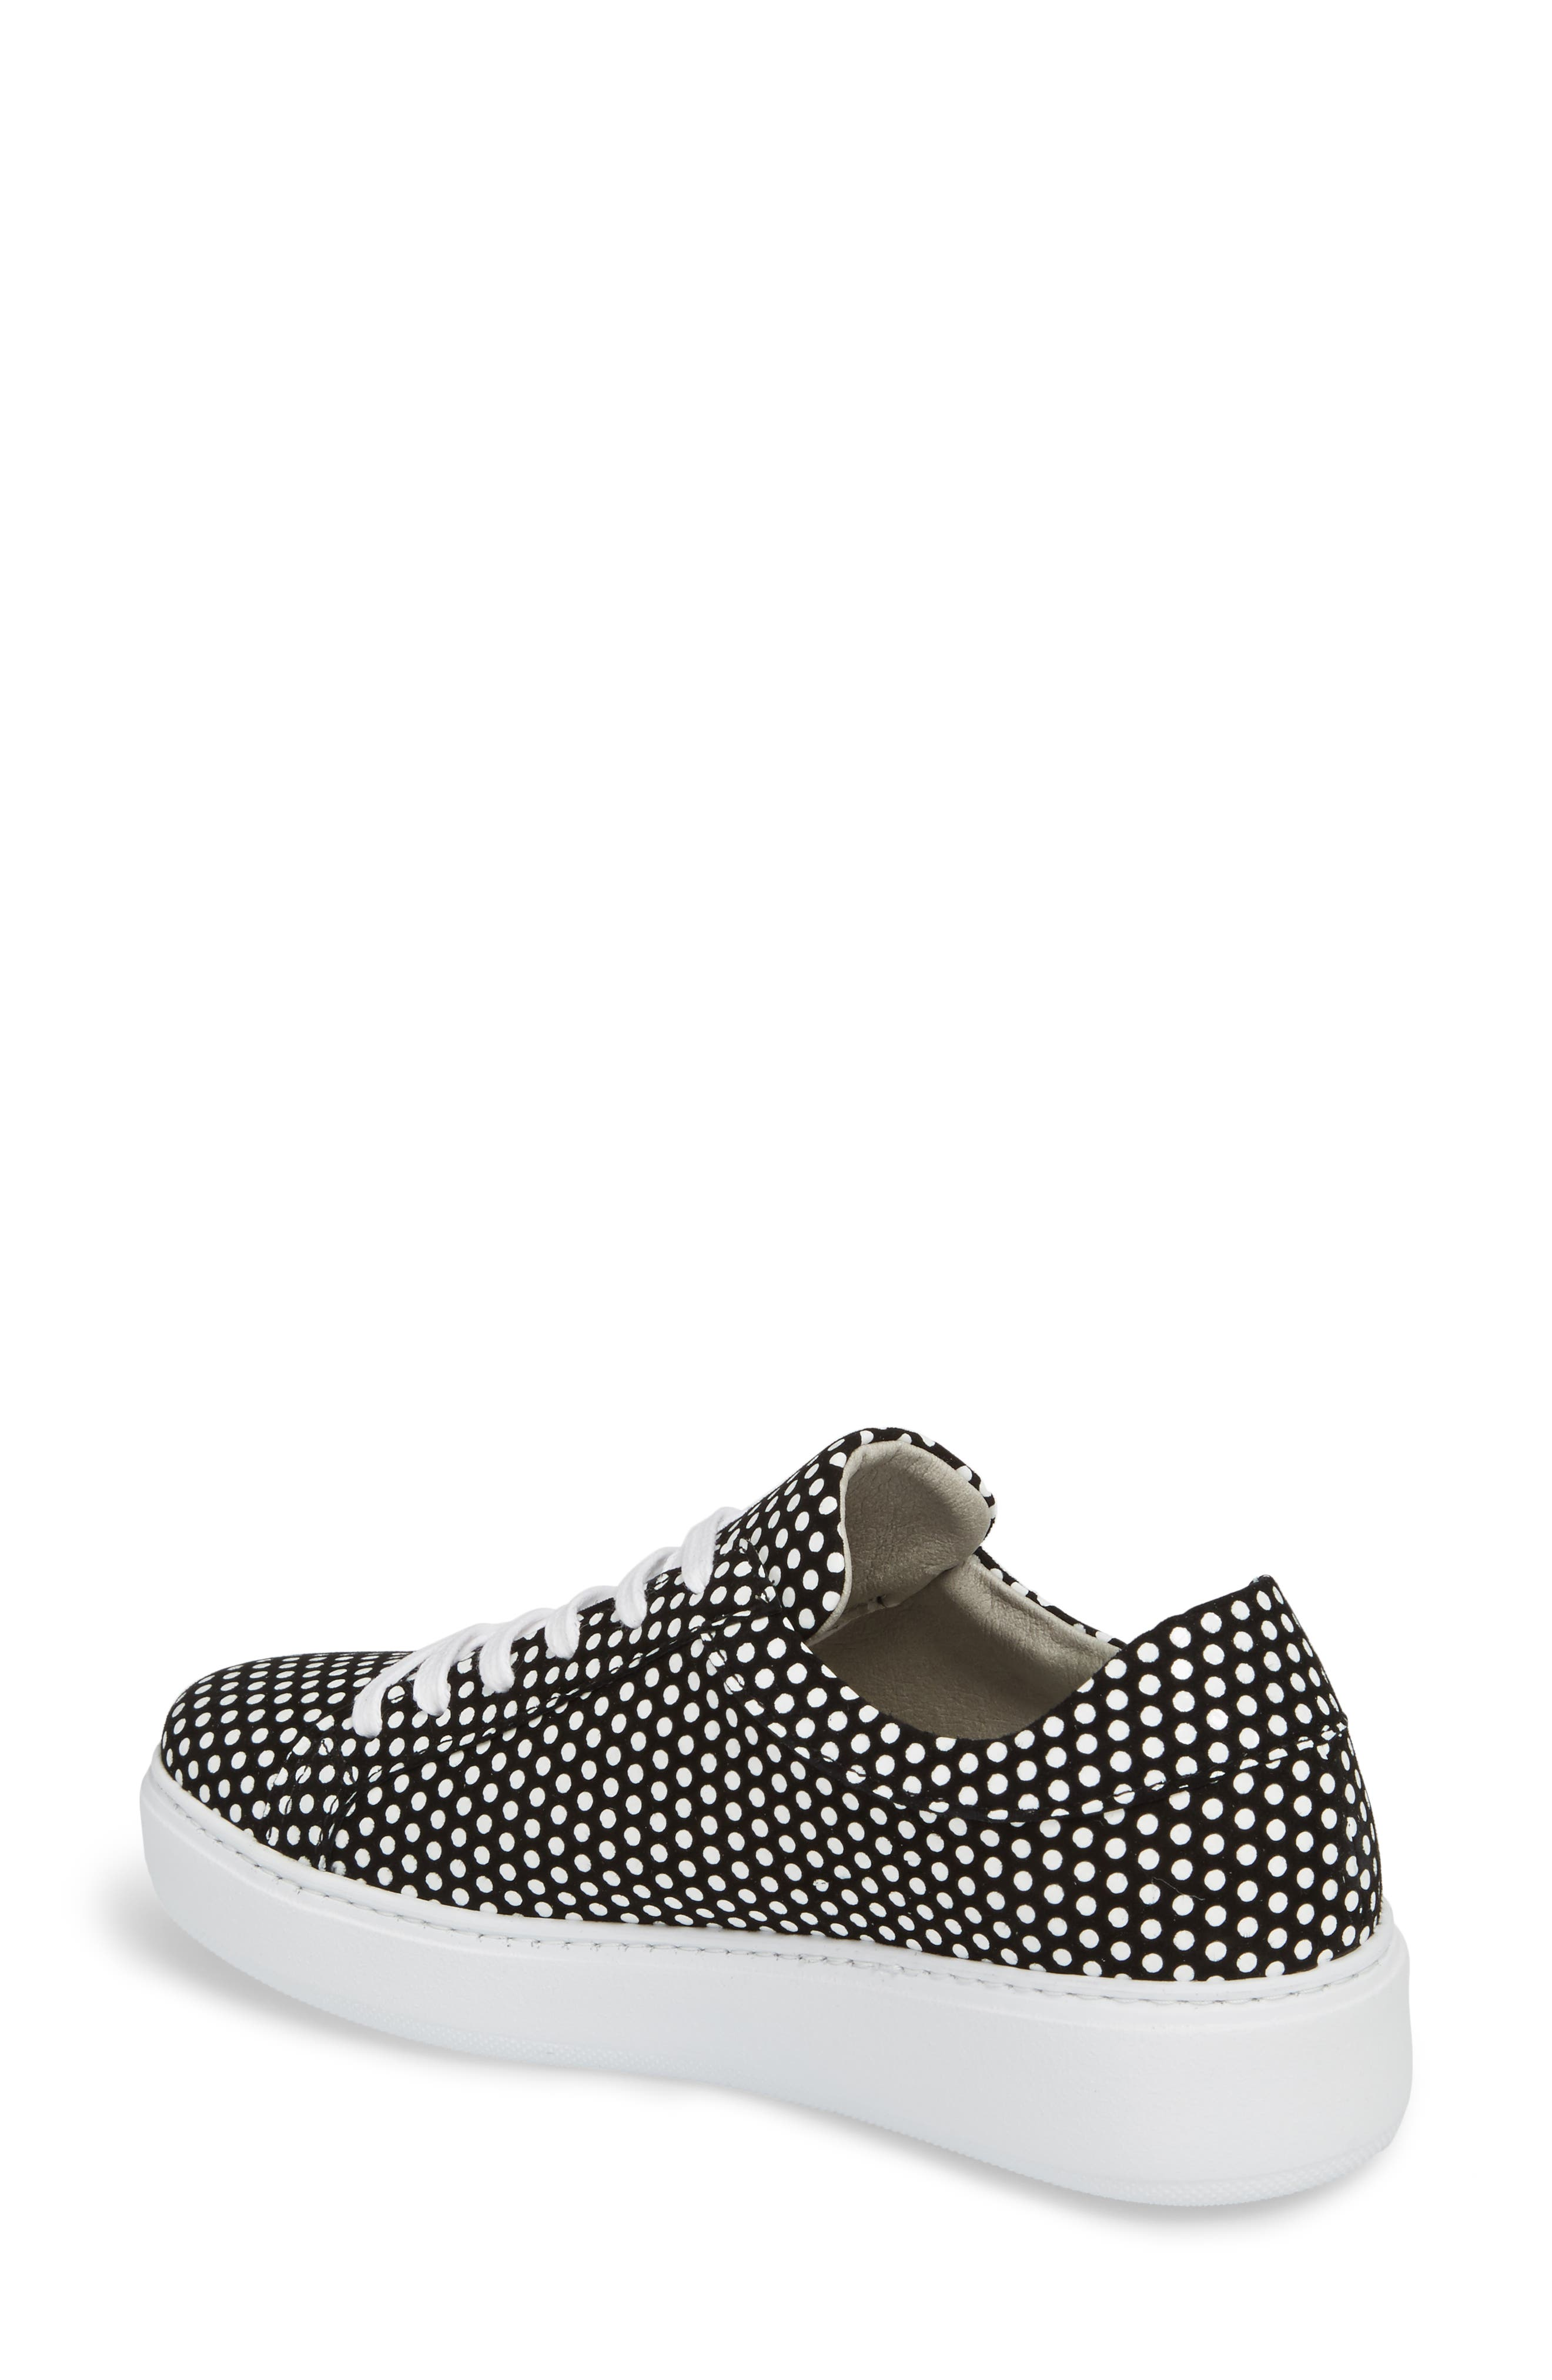 Tully Sneaker,                             Alternate thumbnail 2, color,                             POP SUPREME LEATHER